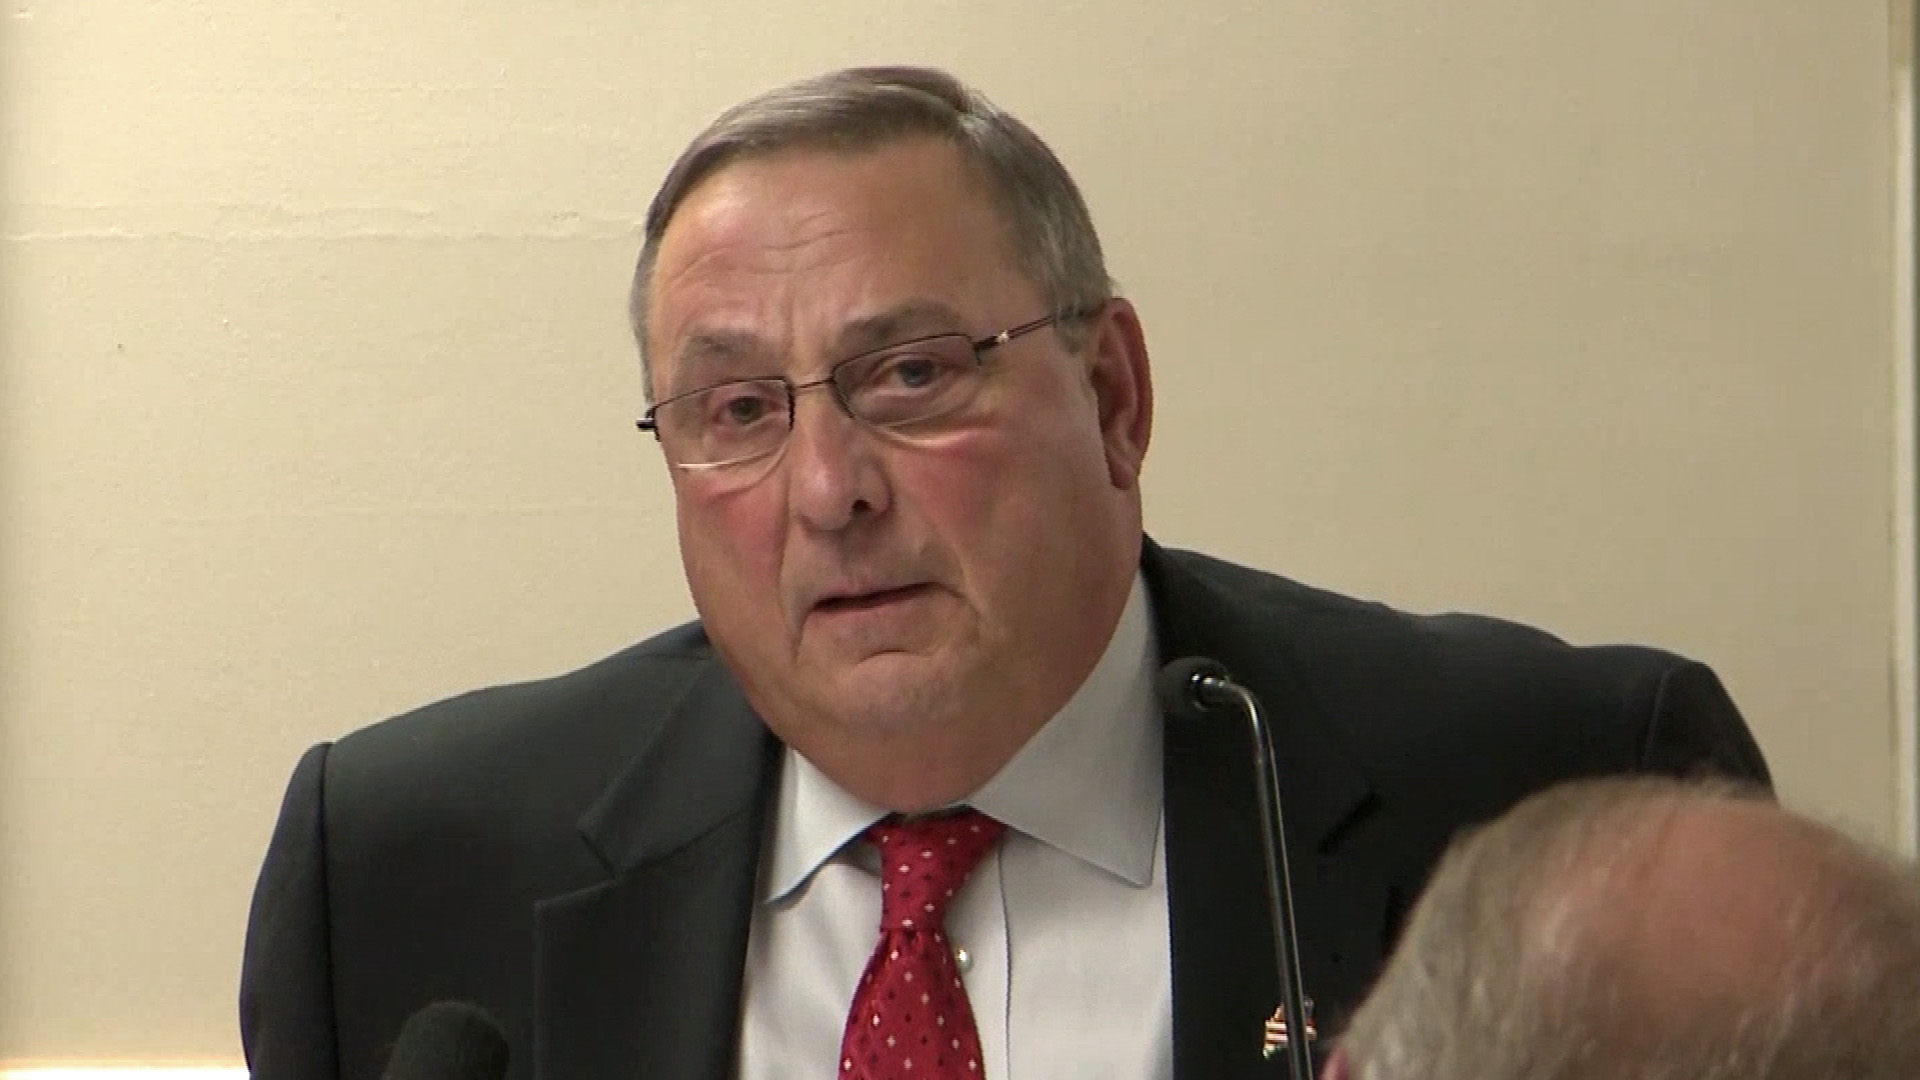 Maine Governor's Remarks About Out-Of-State Drug